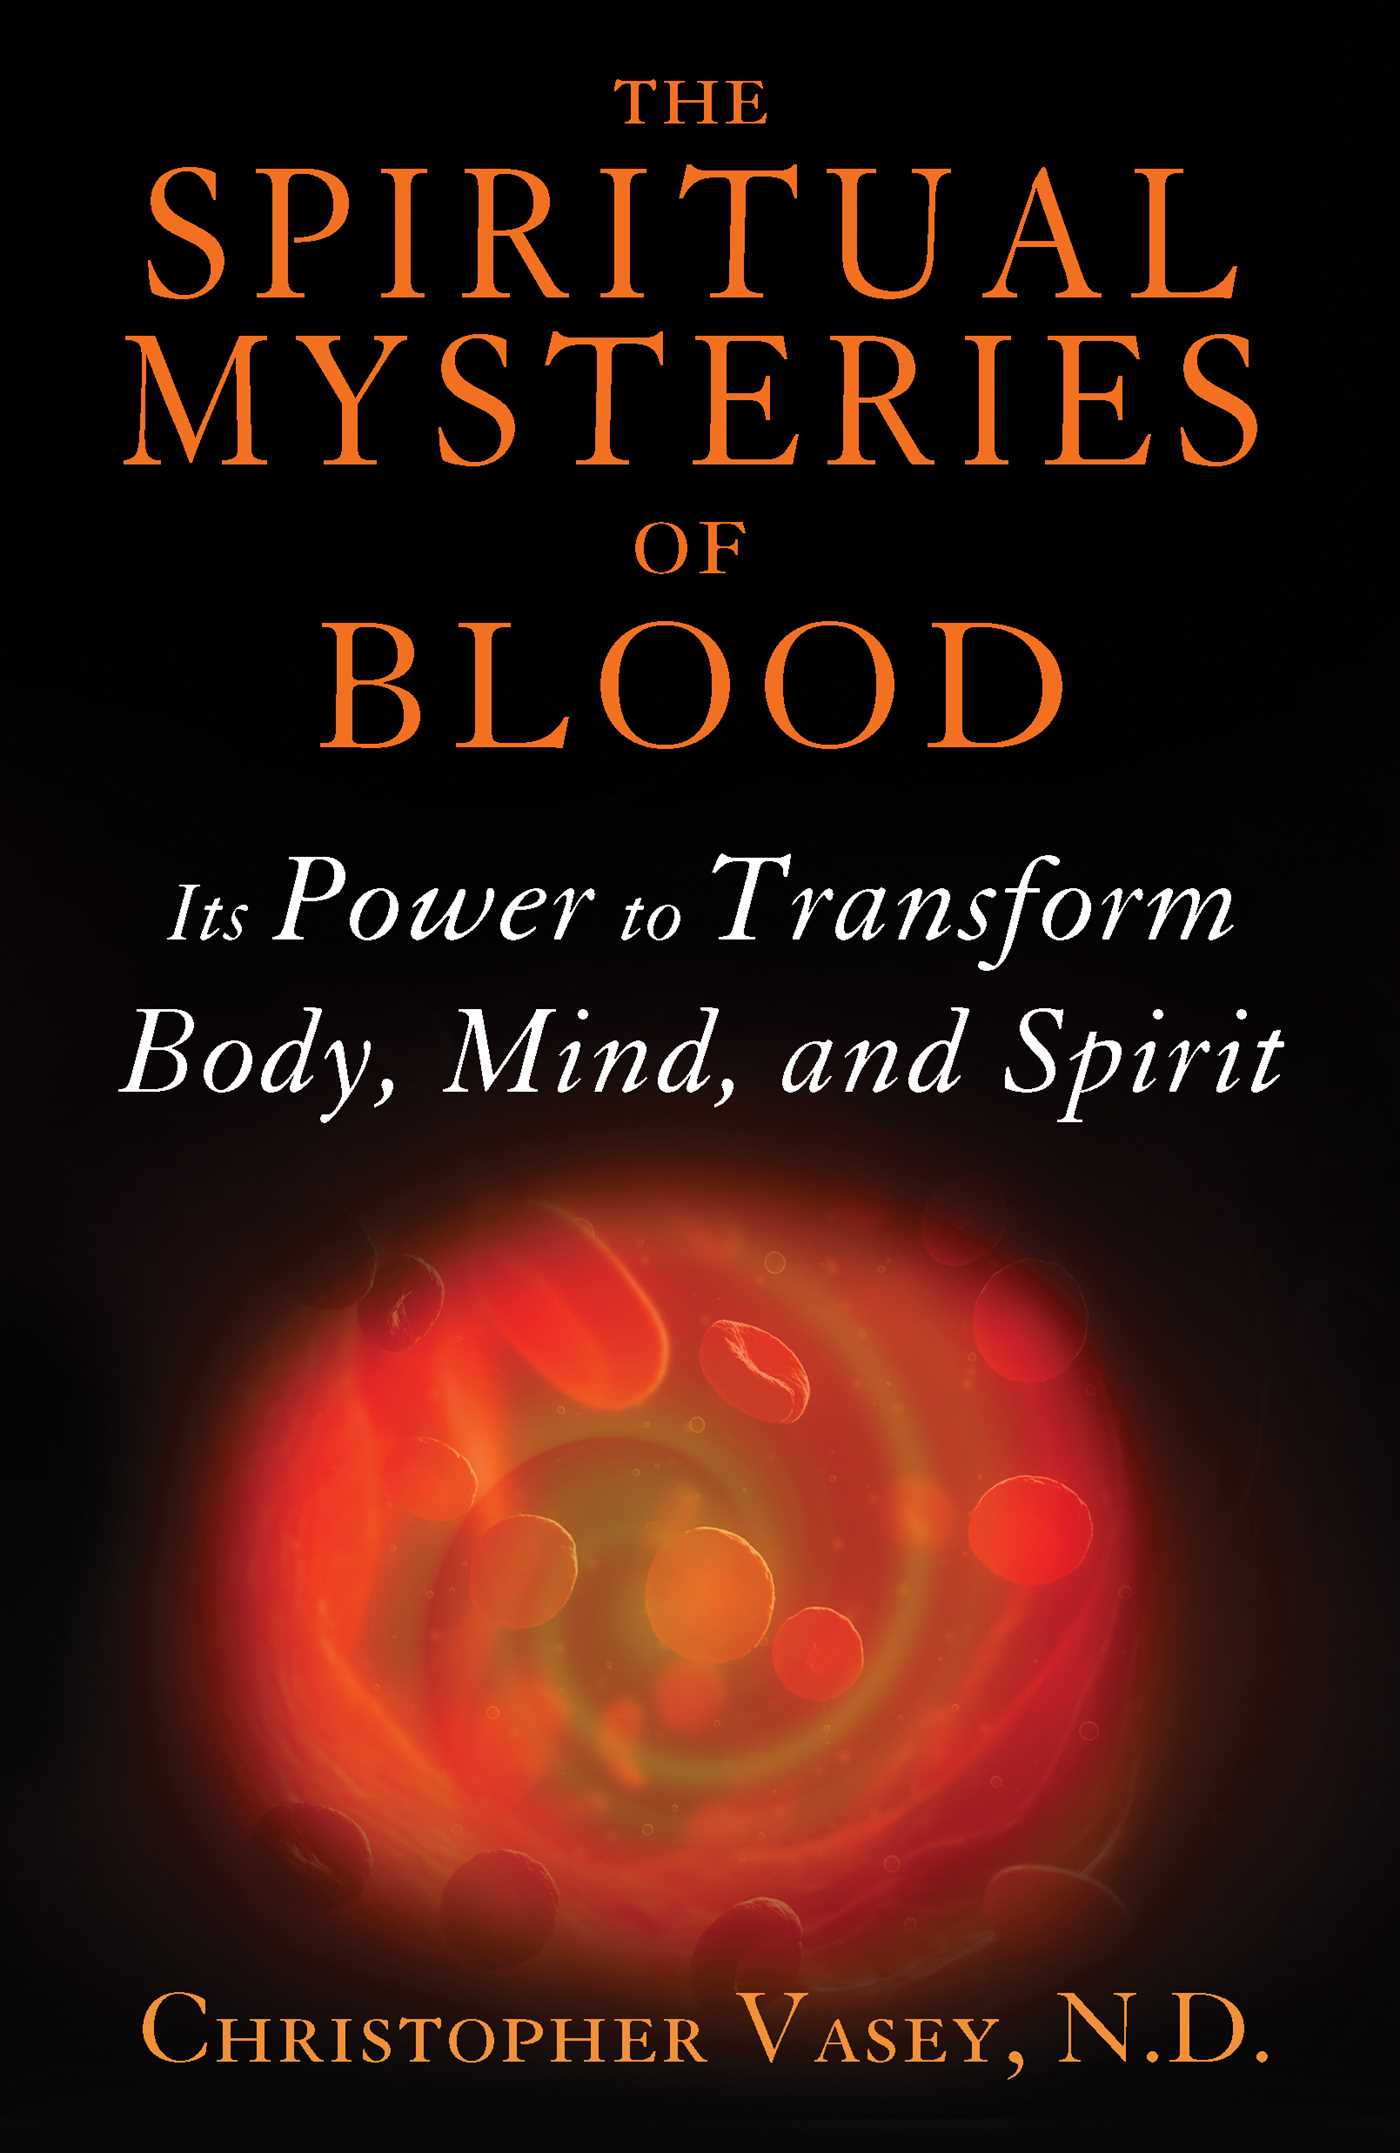 Spiritual-mysteries-of-blood-9781620554173_hr